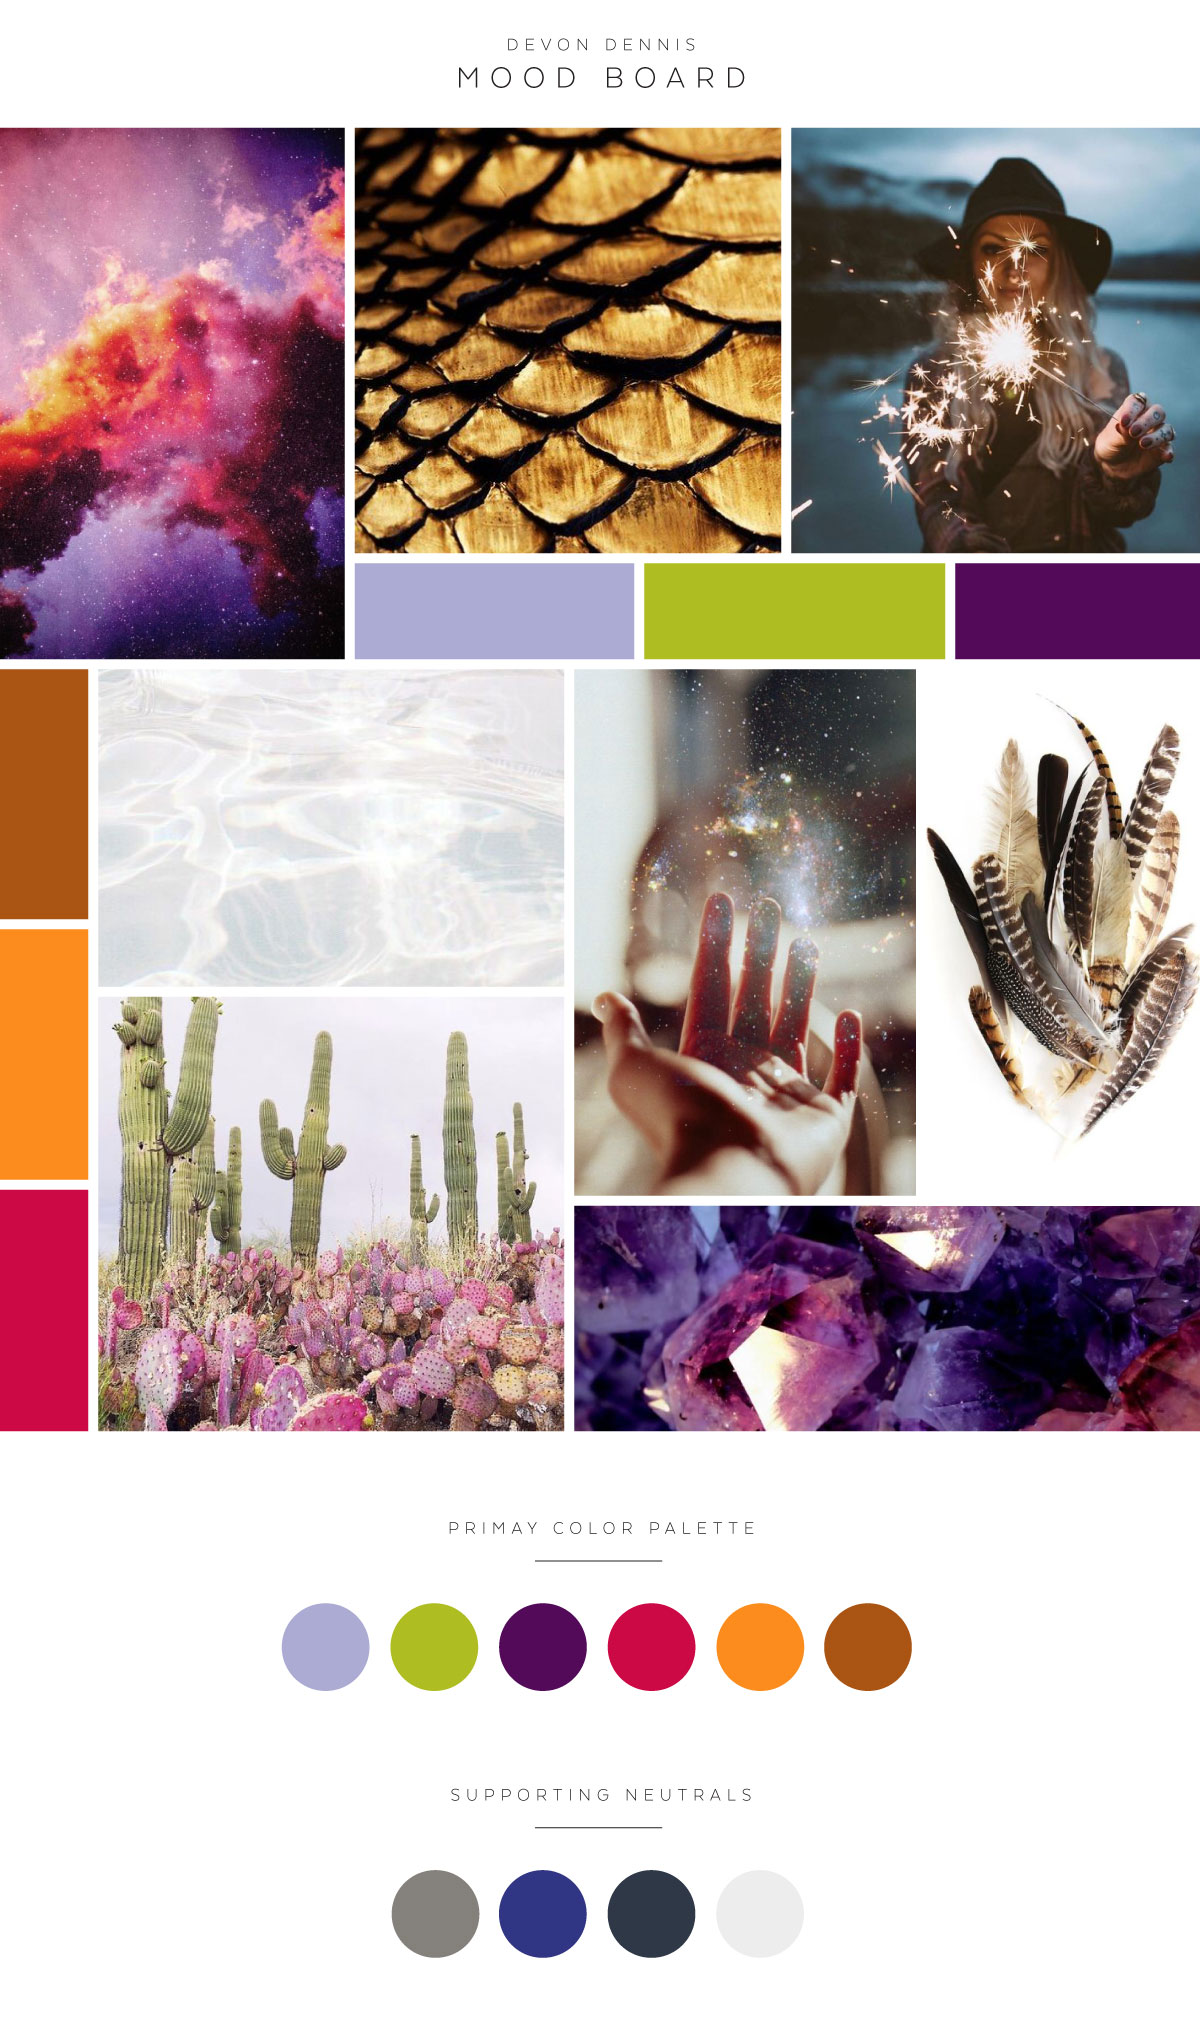 Magical Mood Board and Color Palette #red #purple #gold #orange #feathers #handwrittenlogo #jeweltones